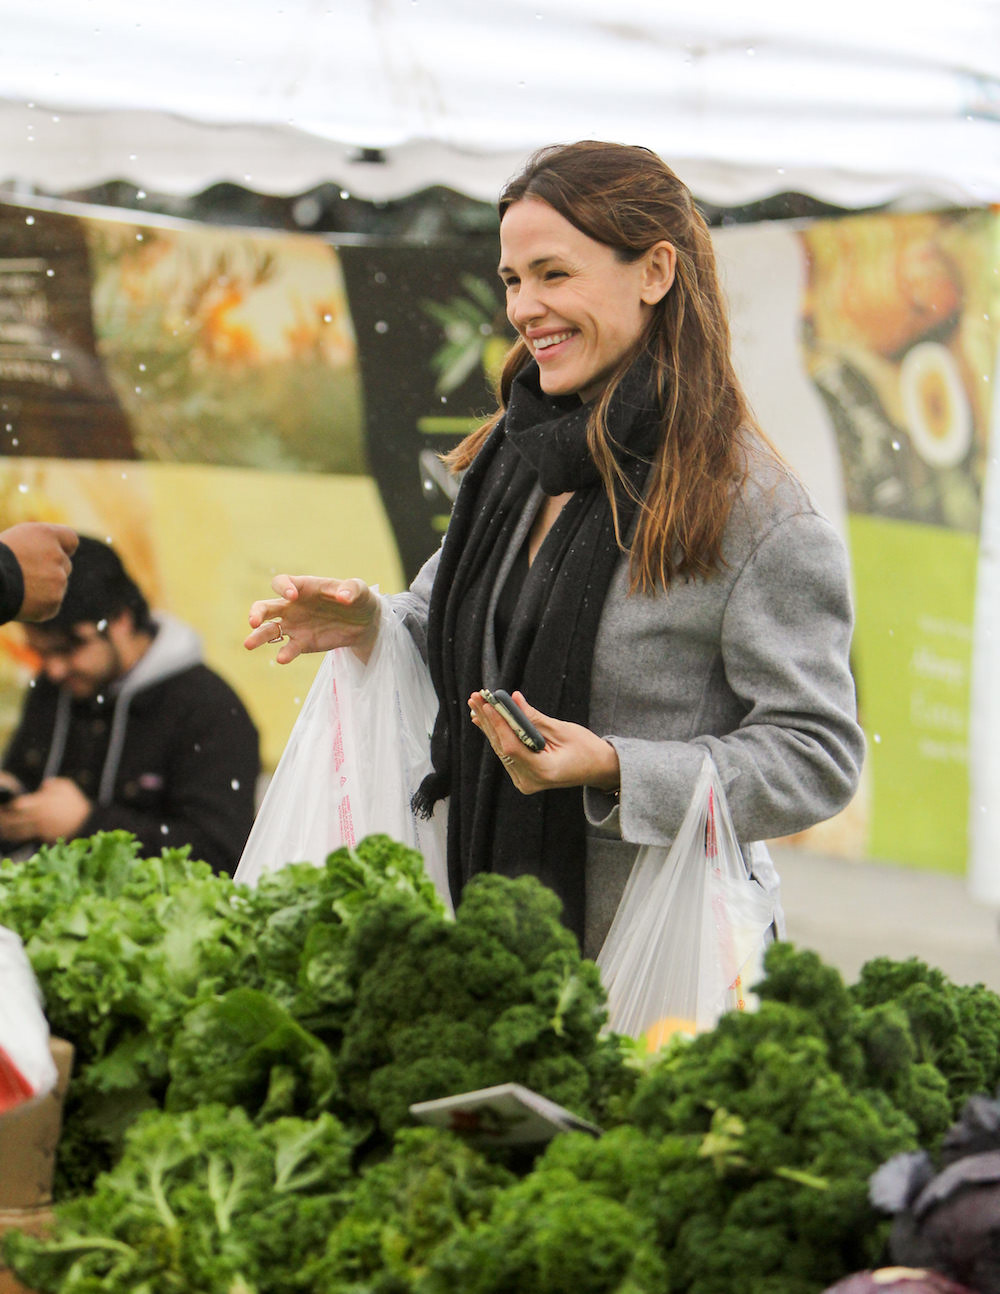 jennifer-garner-kale-recipe-blog218.jpg